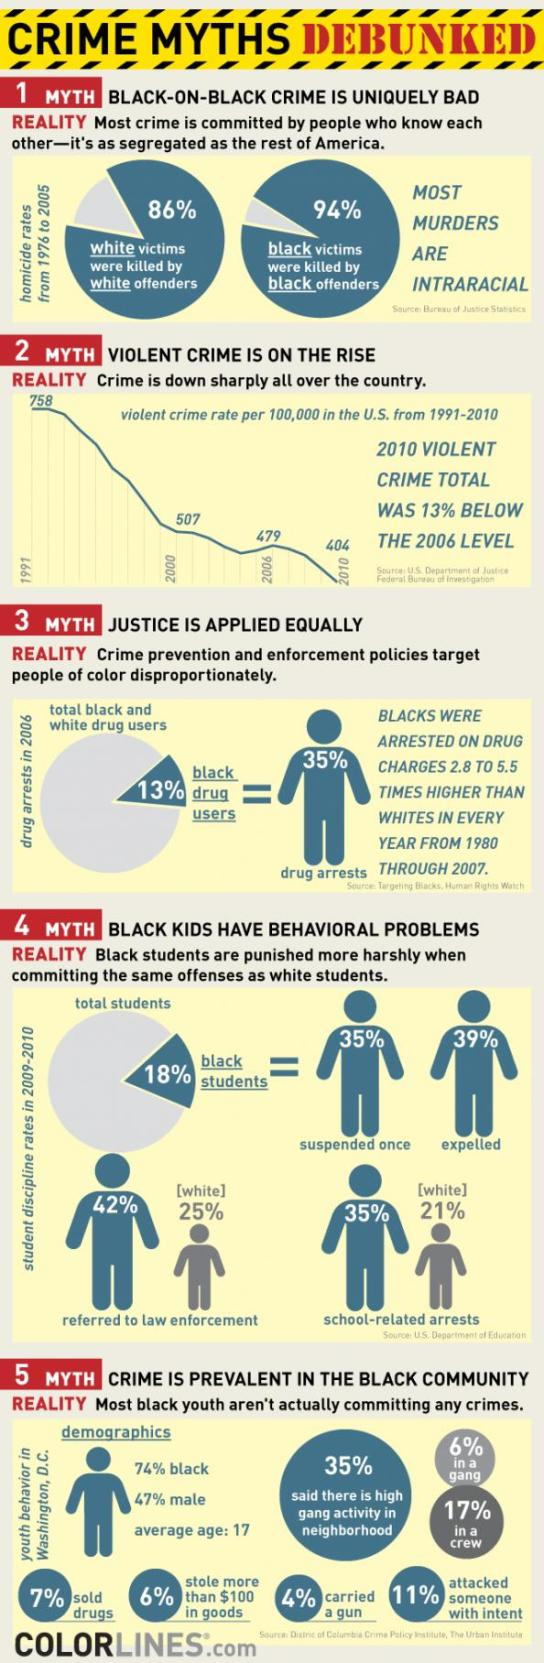 5-Myths-About-Crime-And-Race-In-America-Infographic